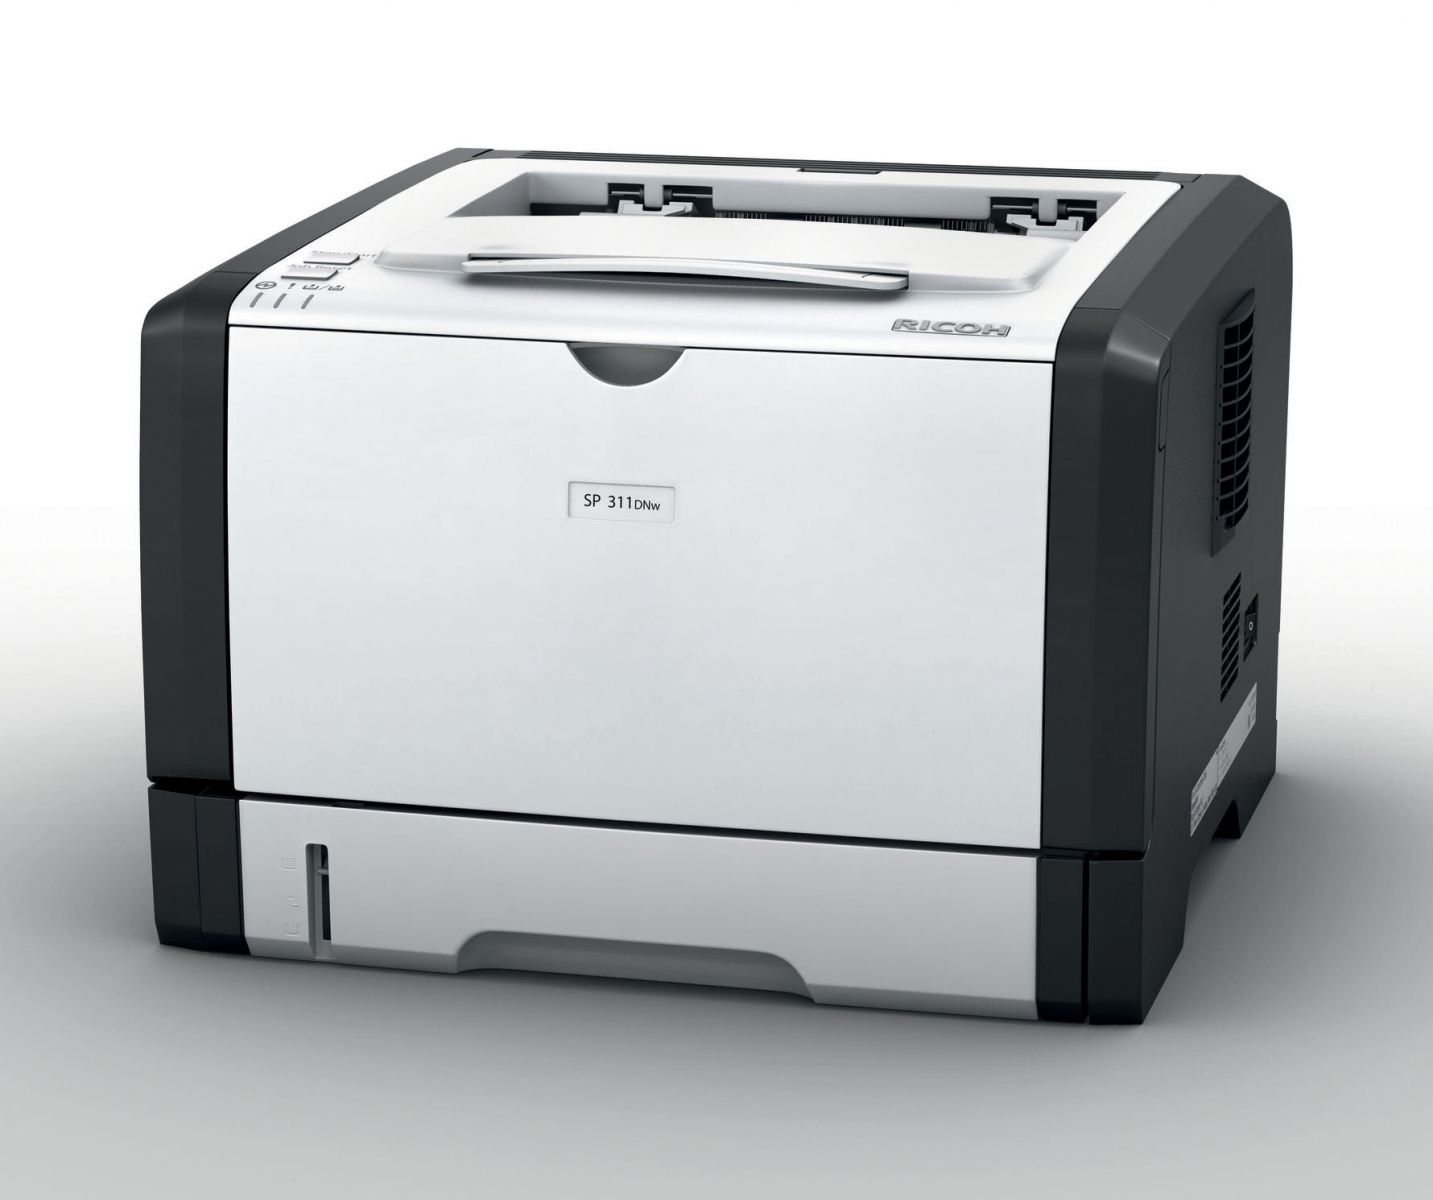 Máy in Ricoh SP 310DN Aficio Laser Printer